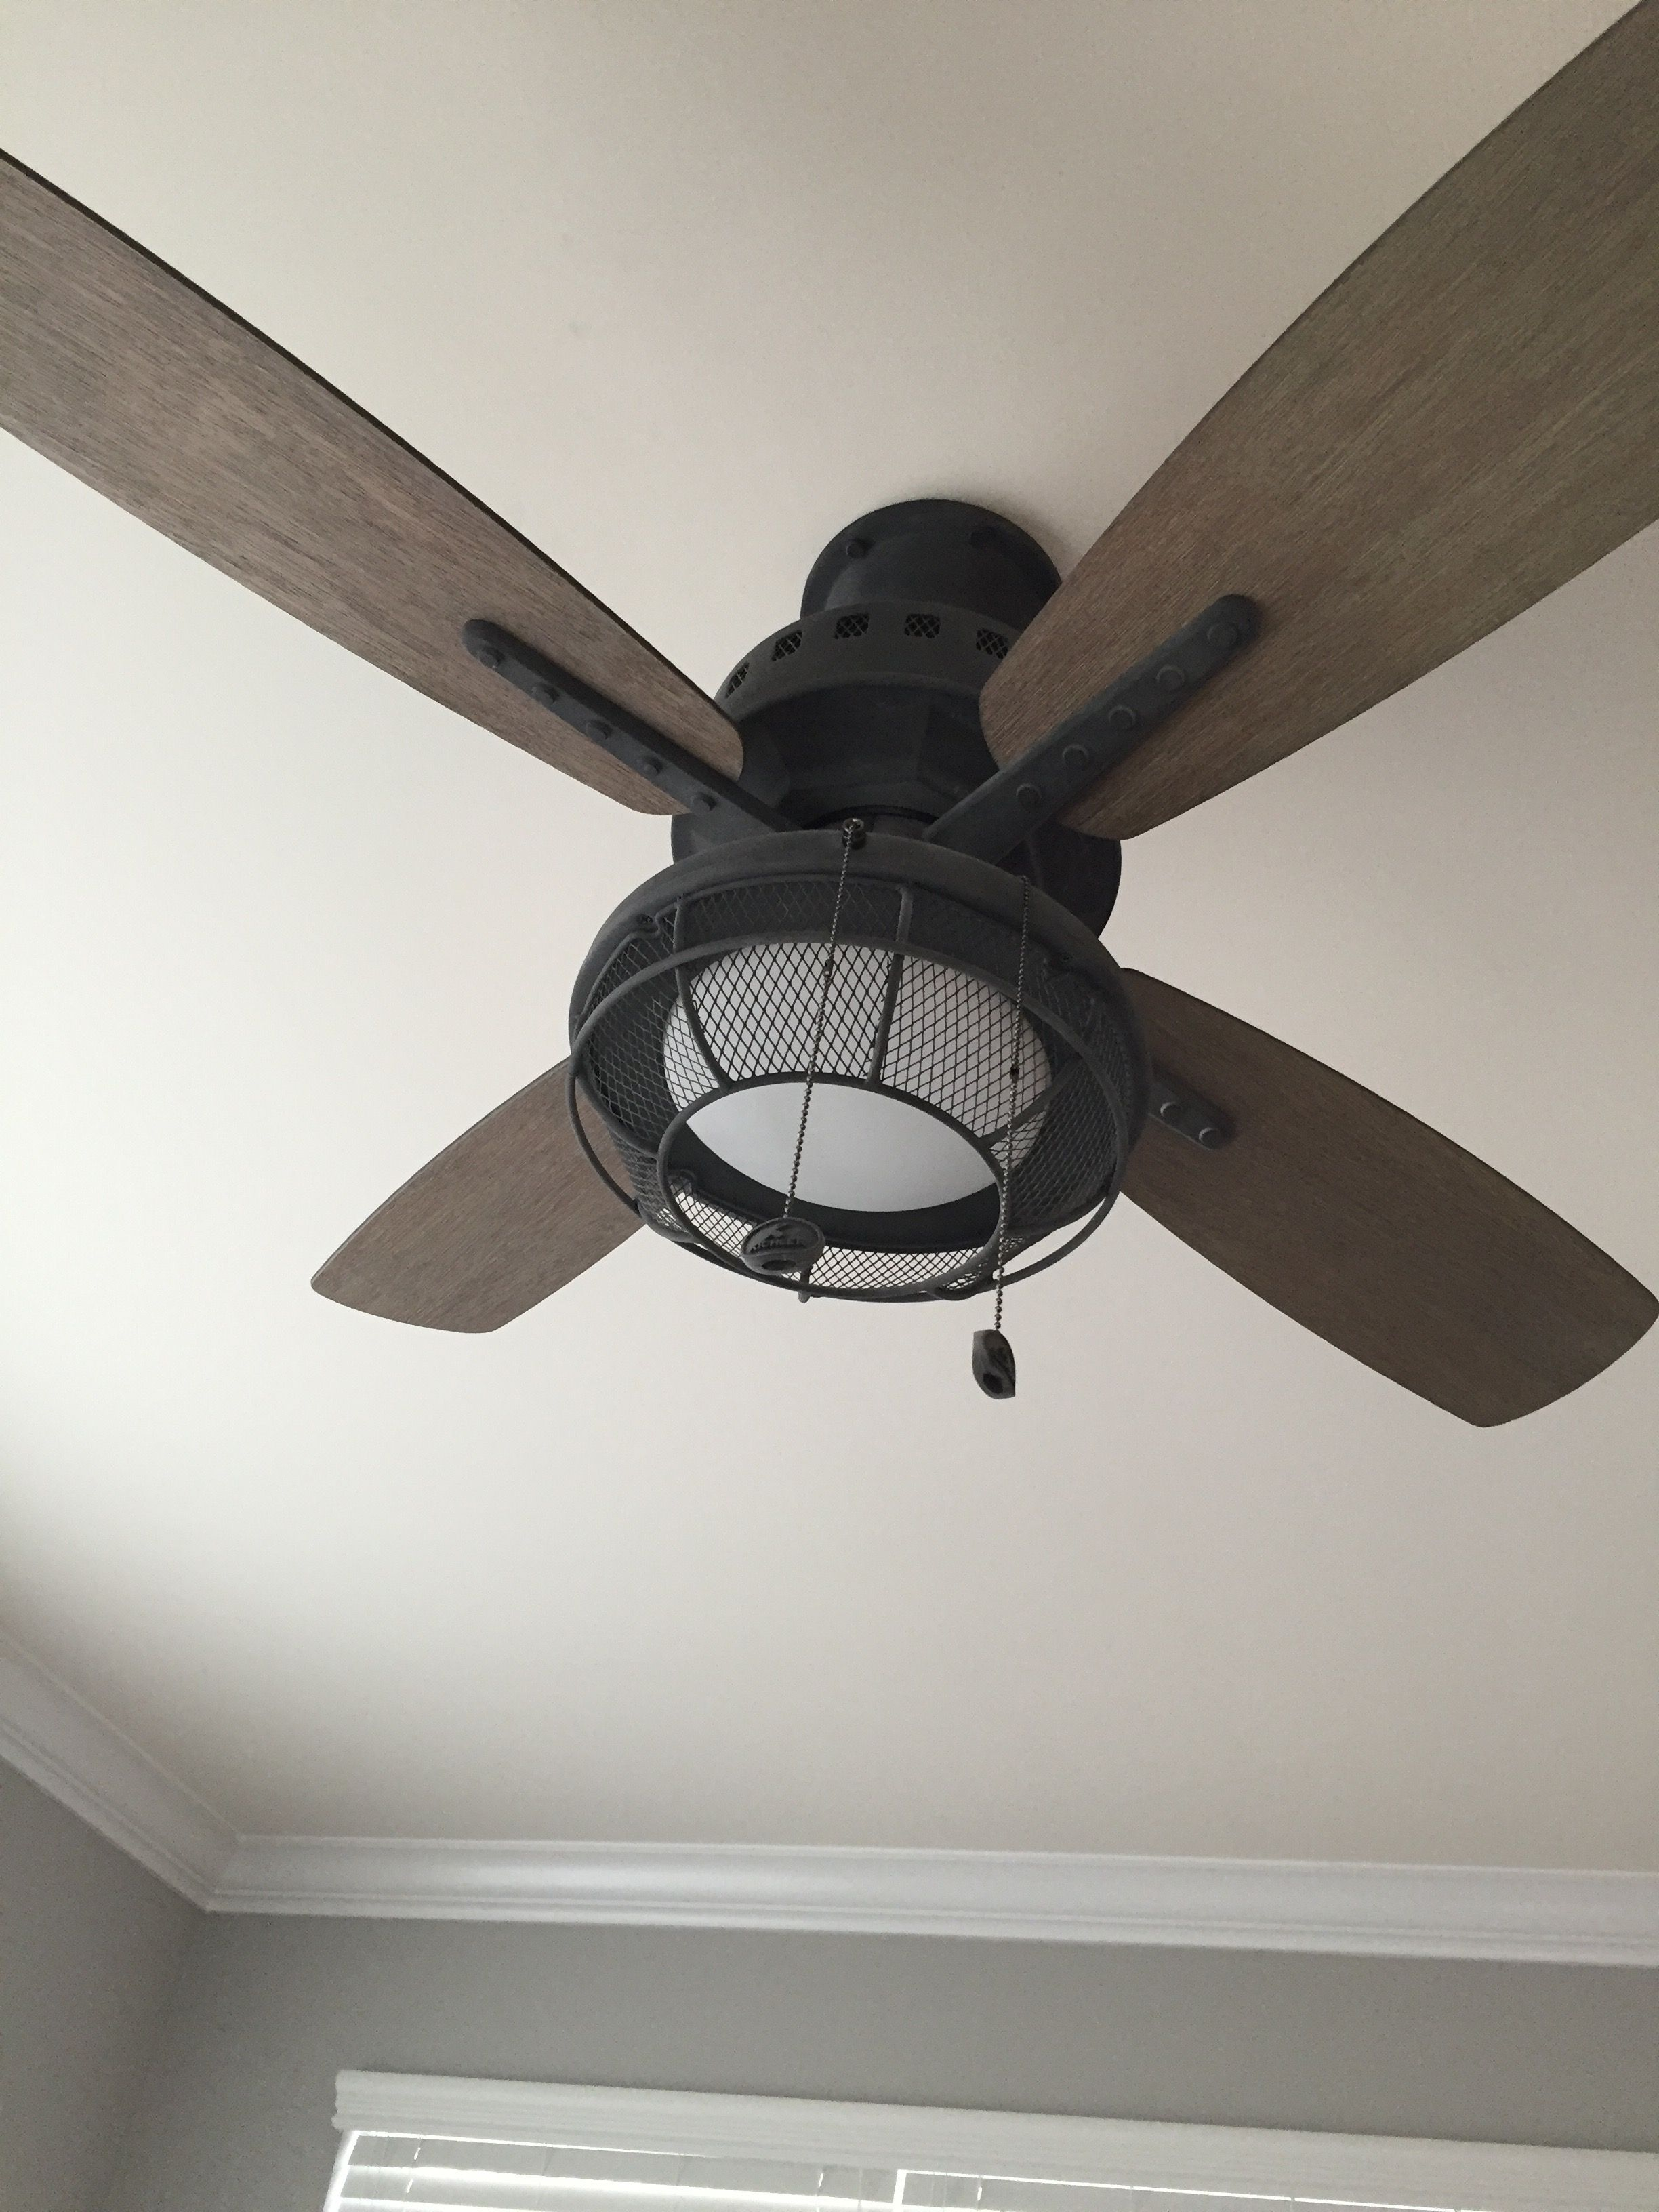 Small Kitchen Ceiling Fans With Lights Casablanca Fans Utopianar Gallery Brushed Nickel Three Light 52